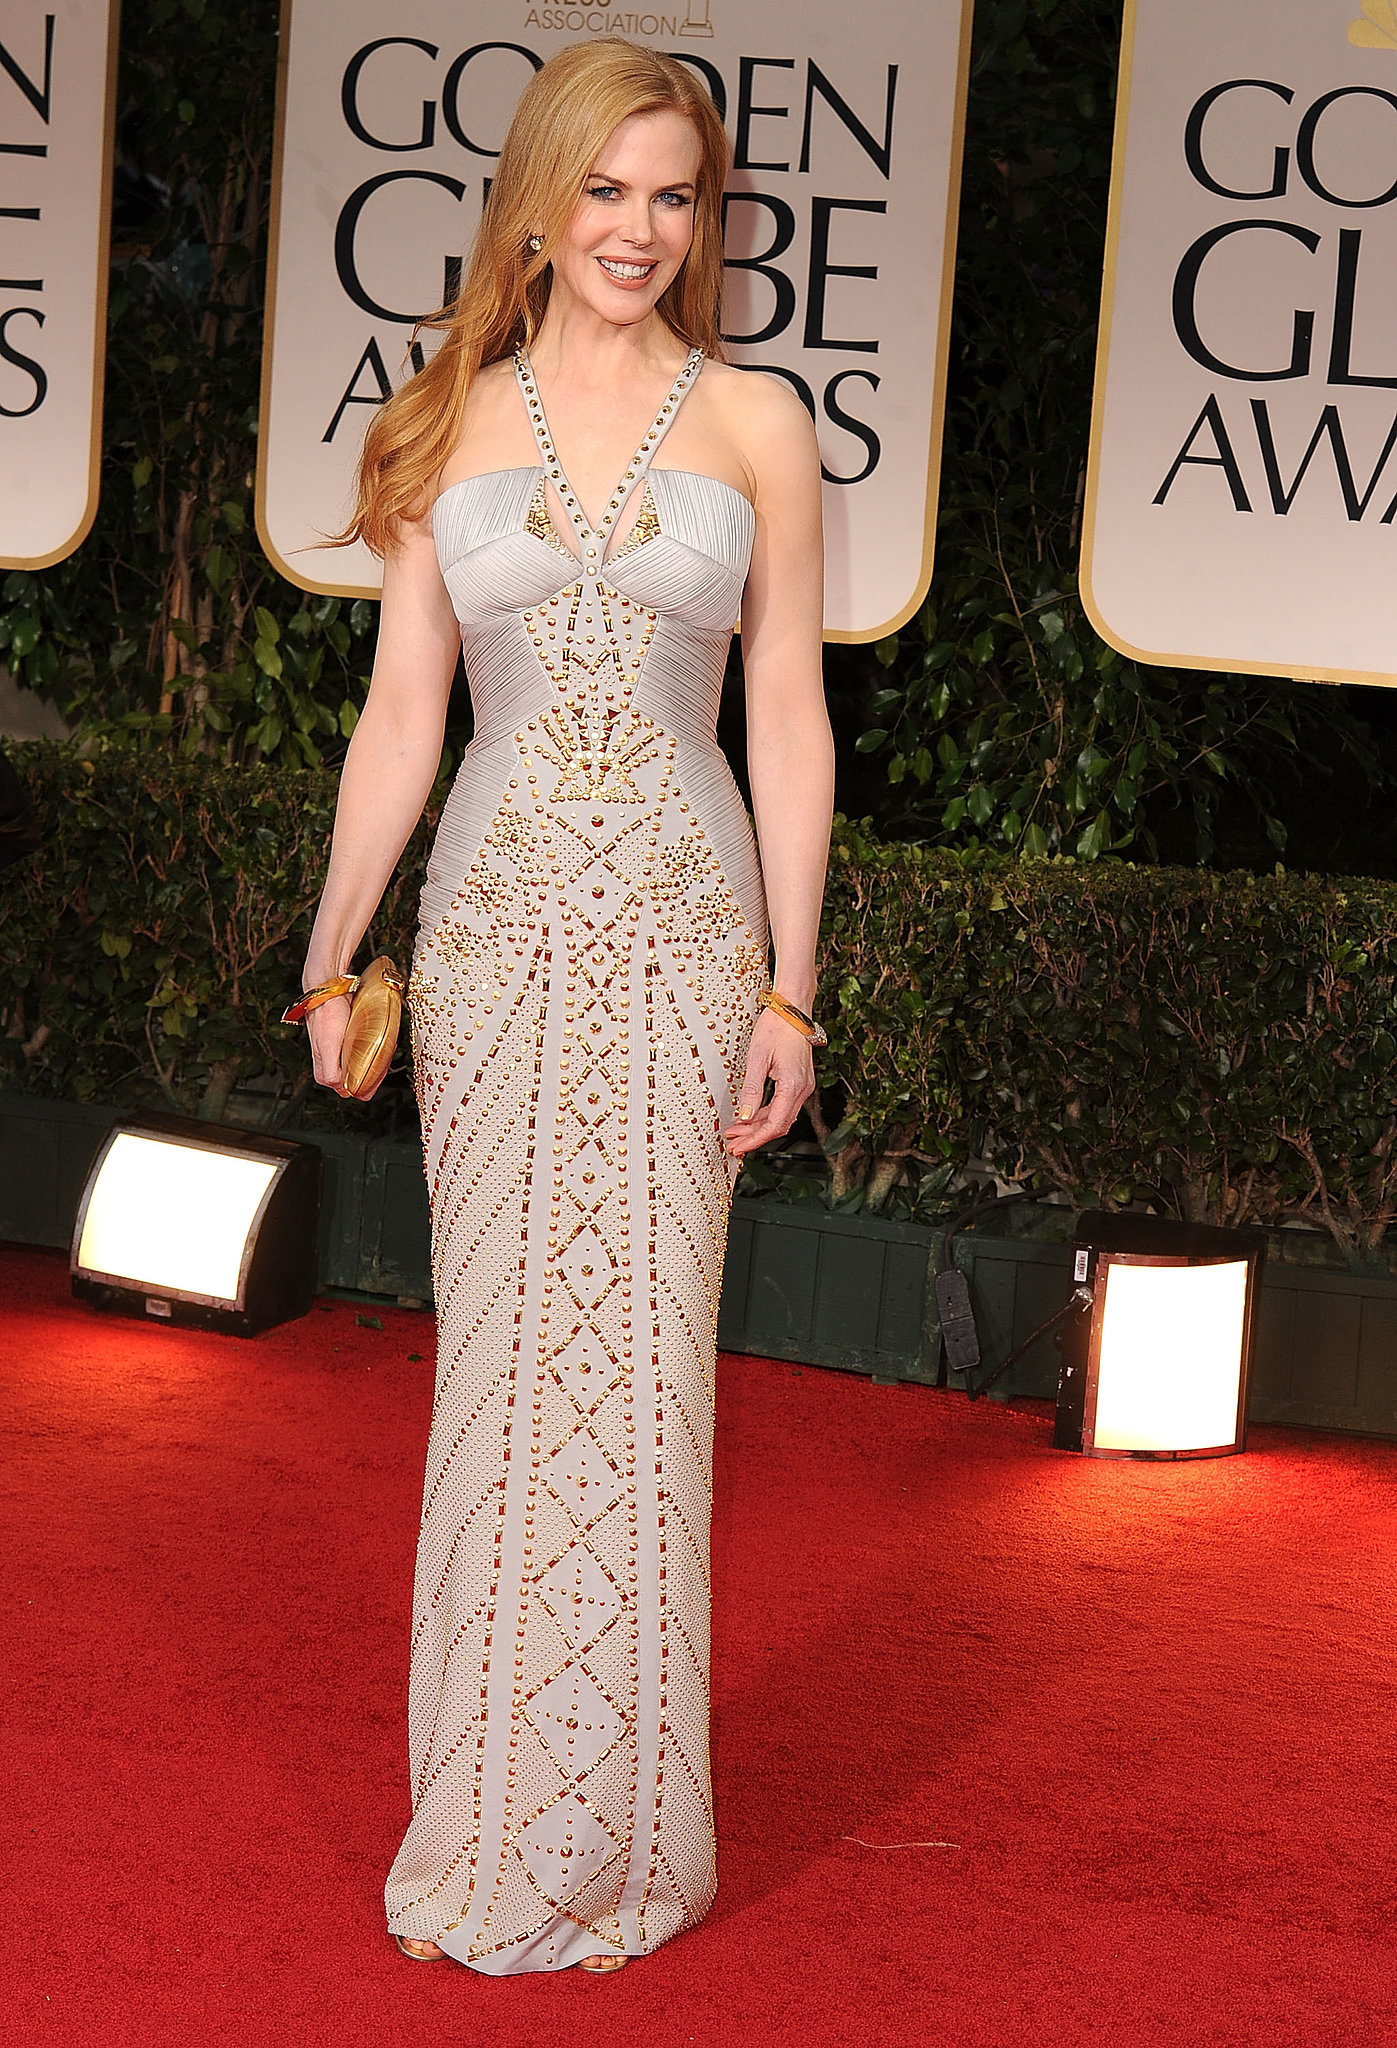 Nicole Kidman in Versace at the Golden Globes